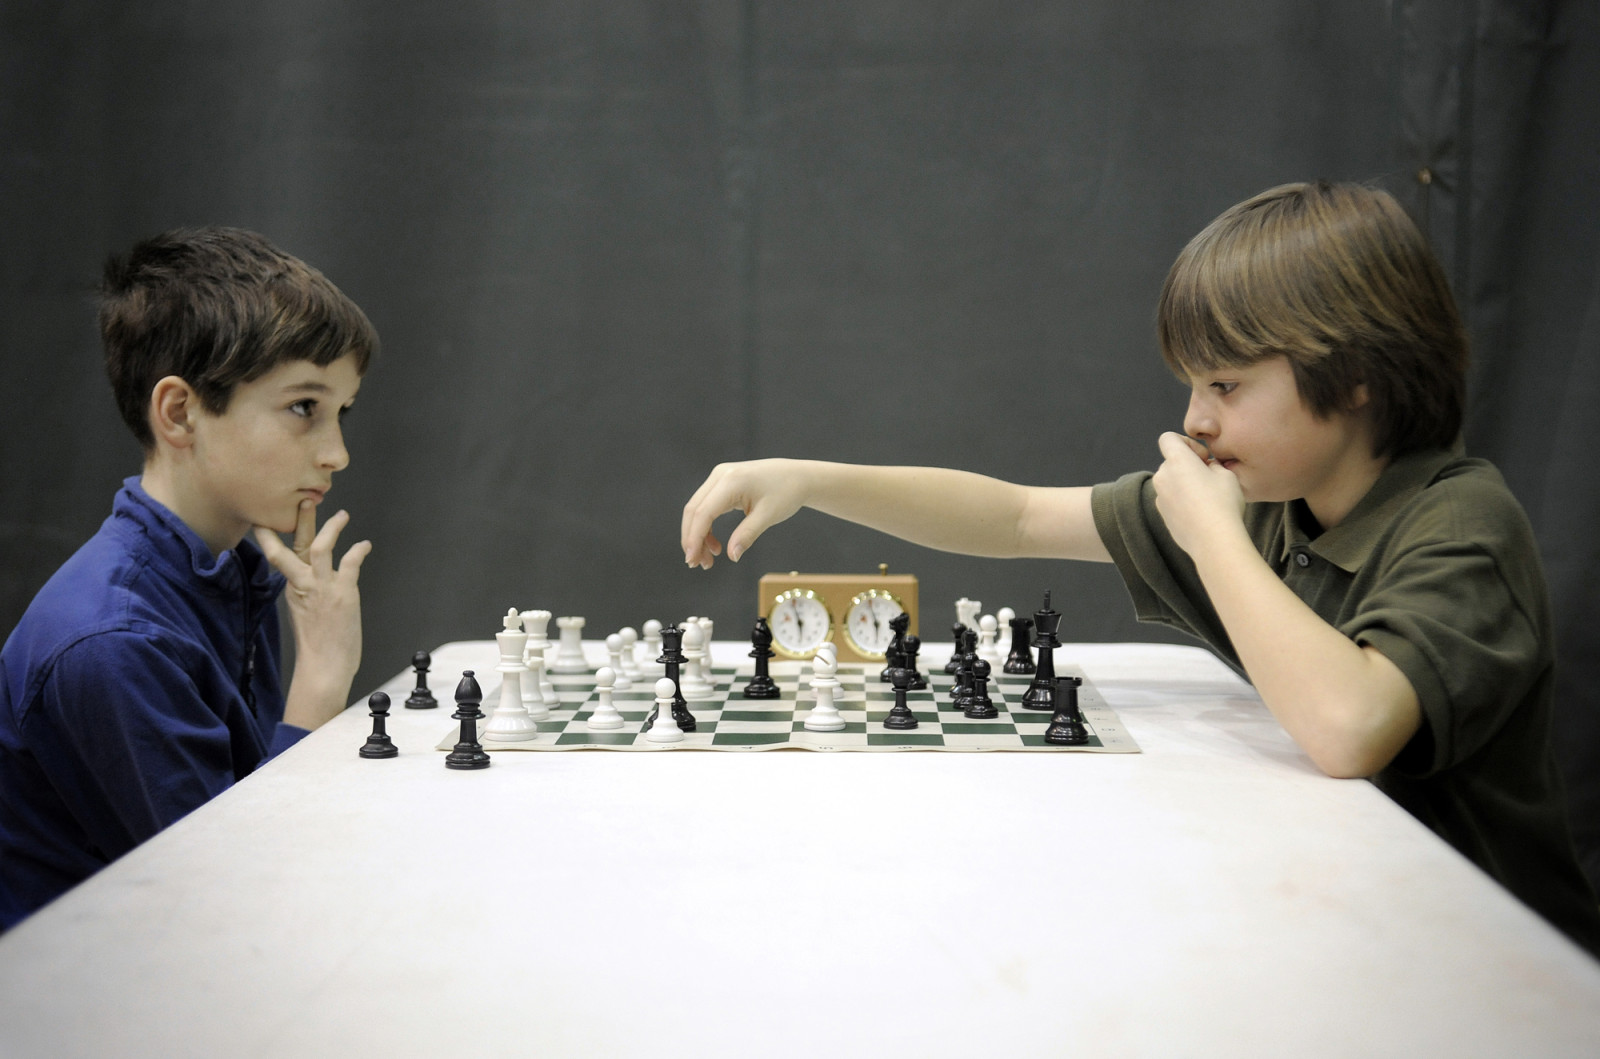 Zane Durante waits for defending champion Grant Roulier to make a move during the tie-breaking championship match at the annual Columbia Open Chess Tournament at Gentry Middle School.